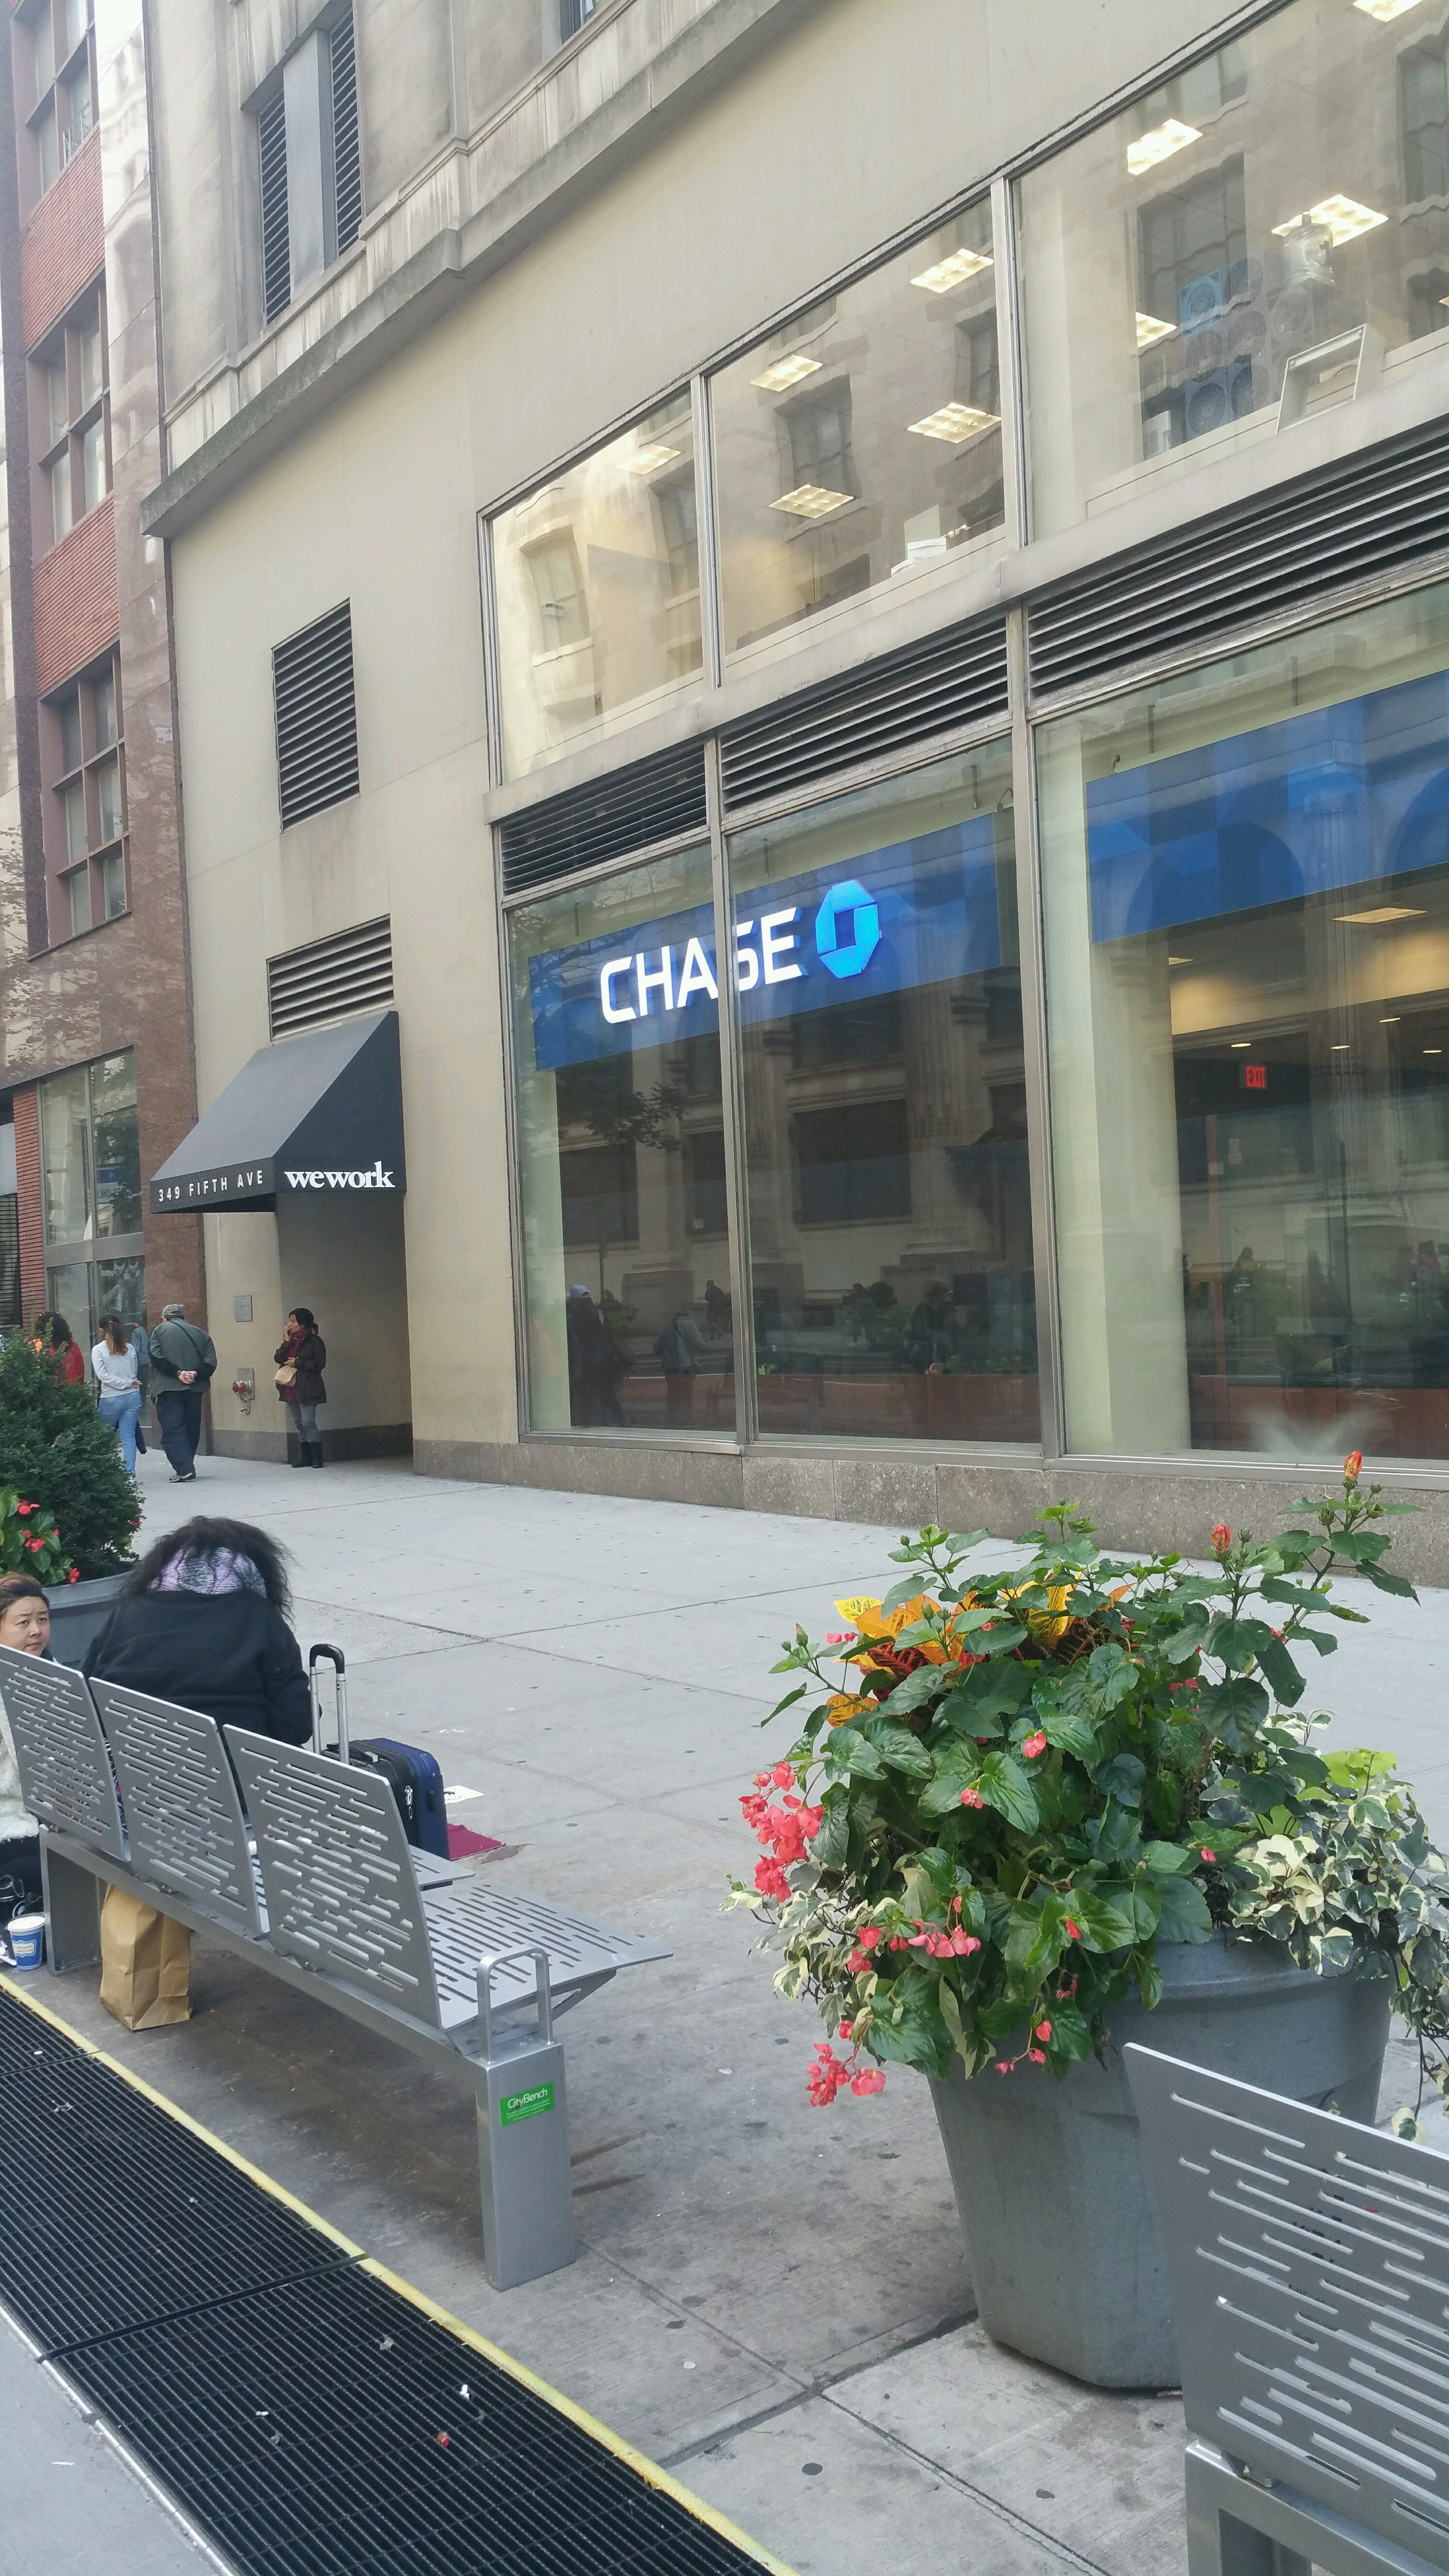 Chase,atm,bank